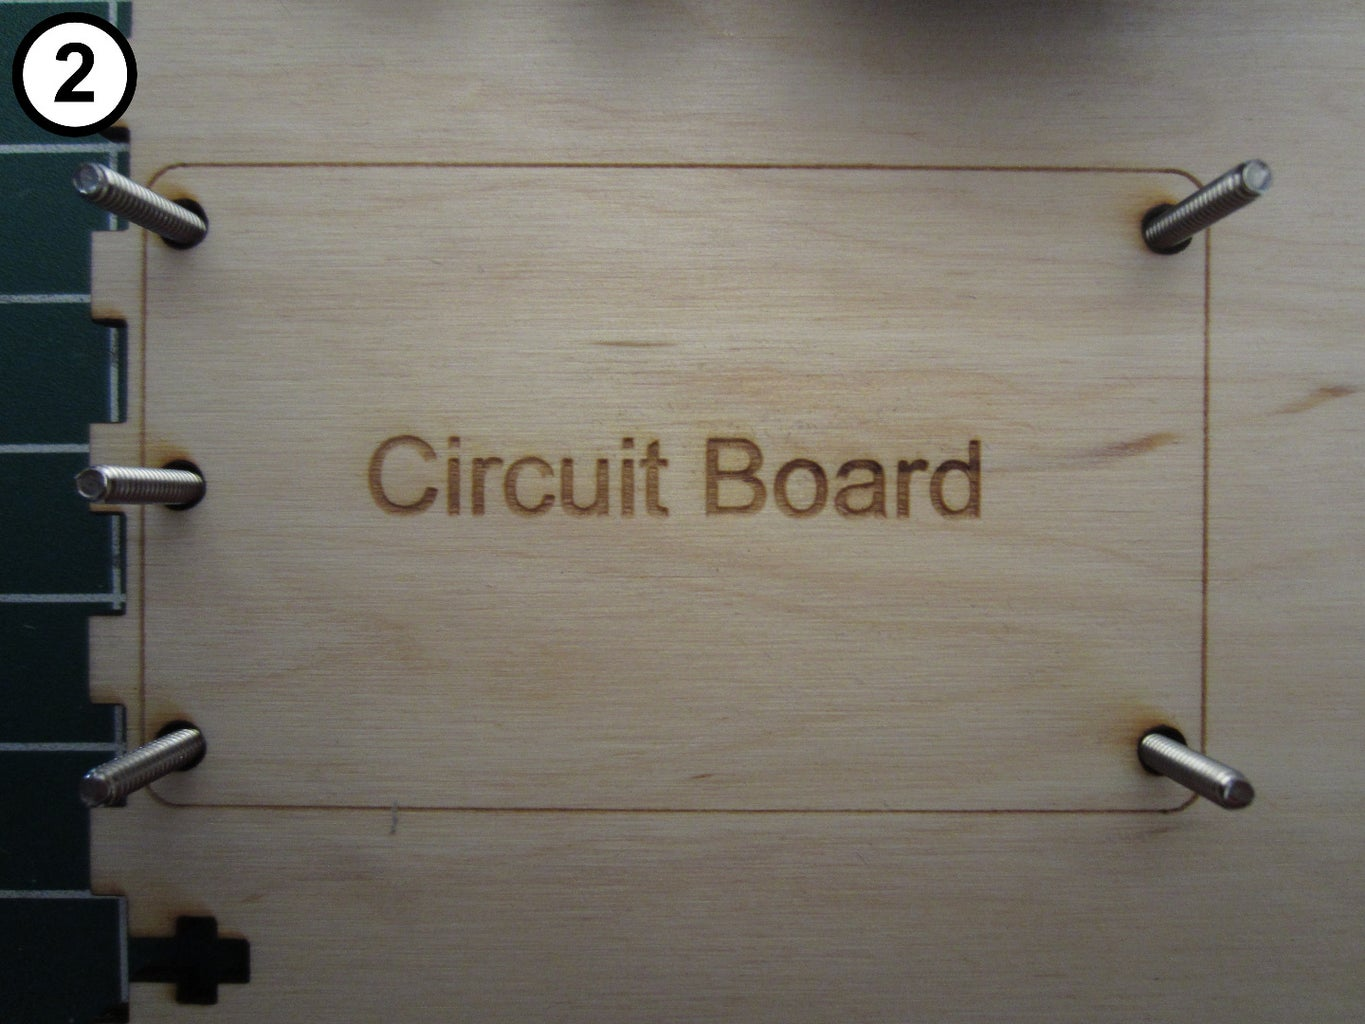 Attach the Circuit Board to the Bottom Panel